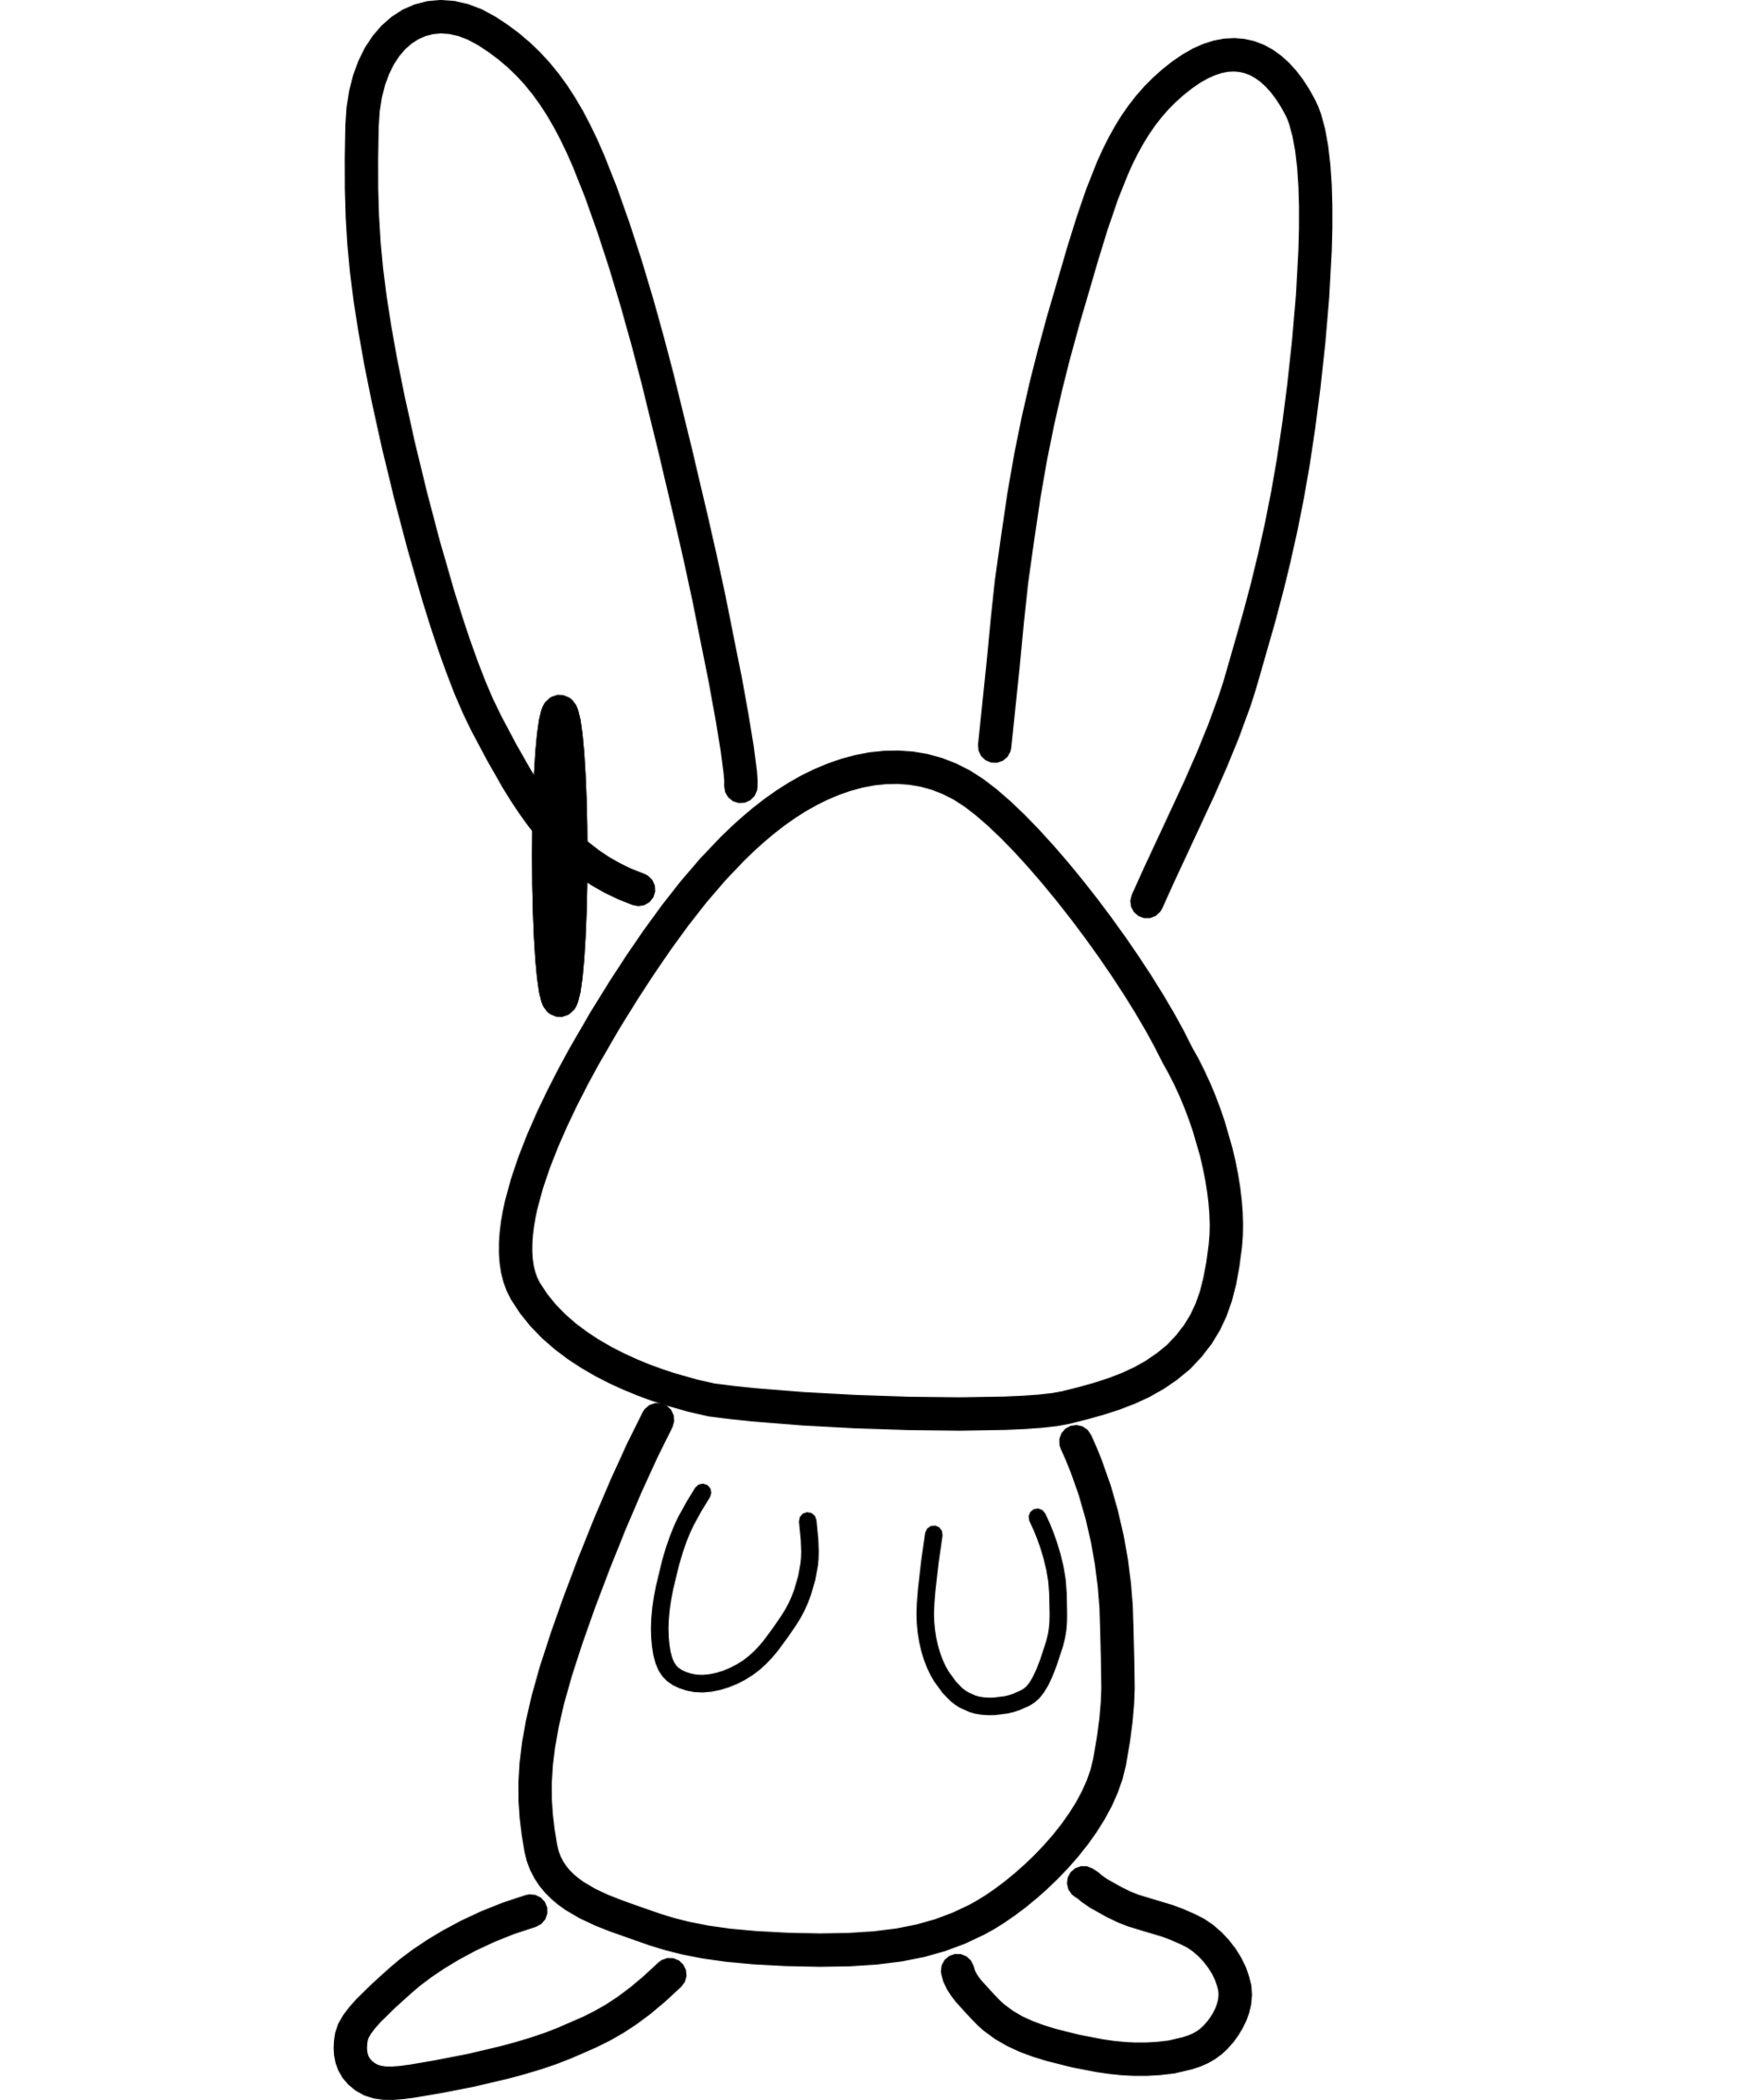 Line Drawing Rabbit : Rabbit line drawing clipart best